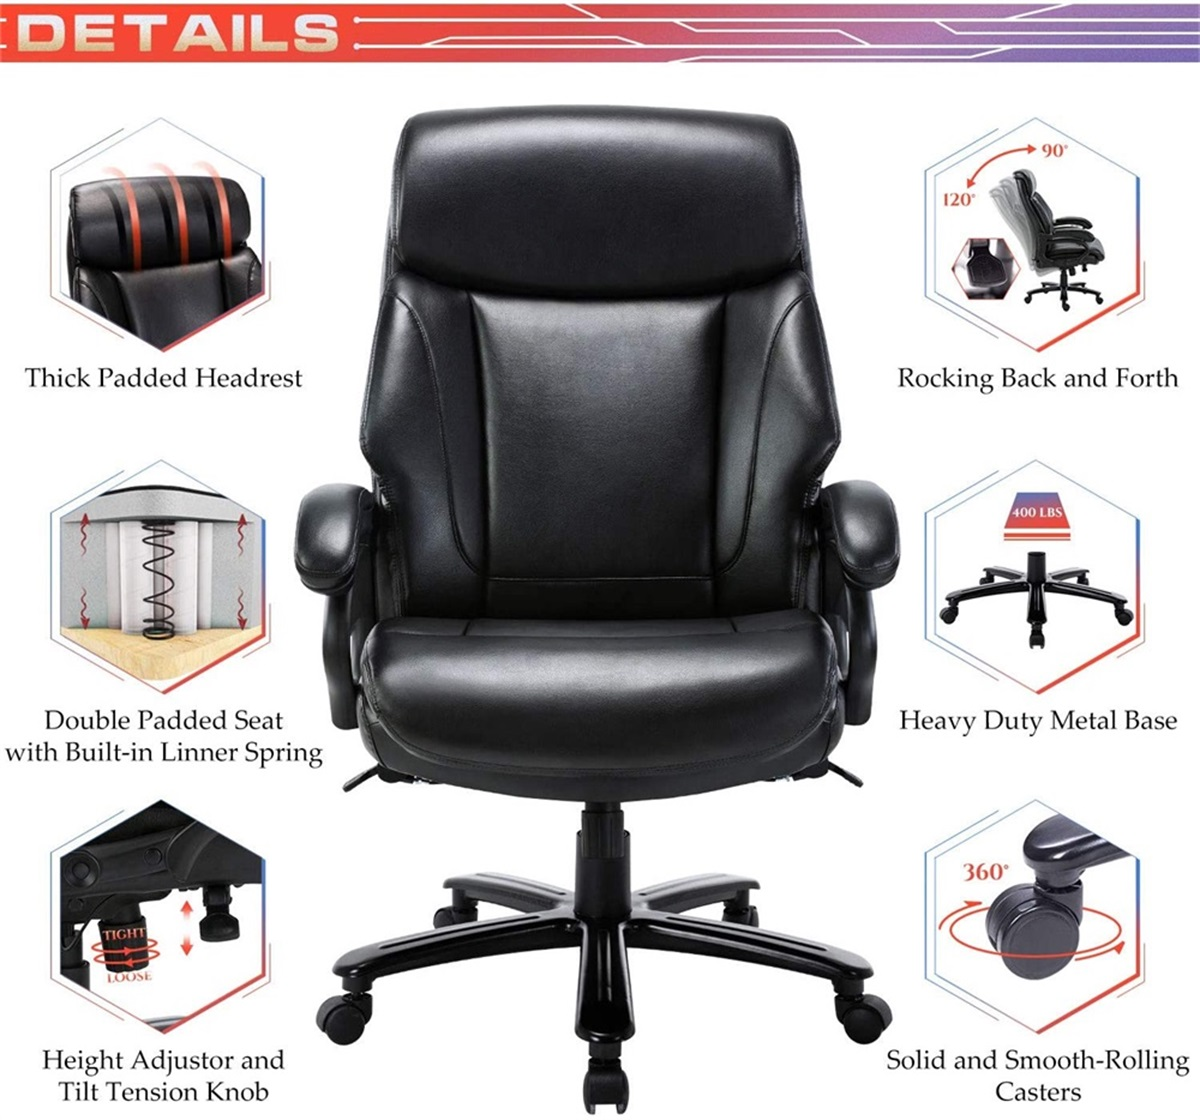 Big Tall Ergonomic Design Bonded Leather Office Chair Large Executive Desk Chair Computer Swivel Chair With High Back Heavy Duty Metal Base Adjustable Tilt Angle Lumbar Support For Home Office